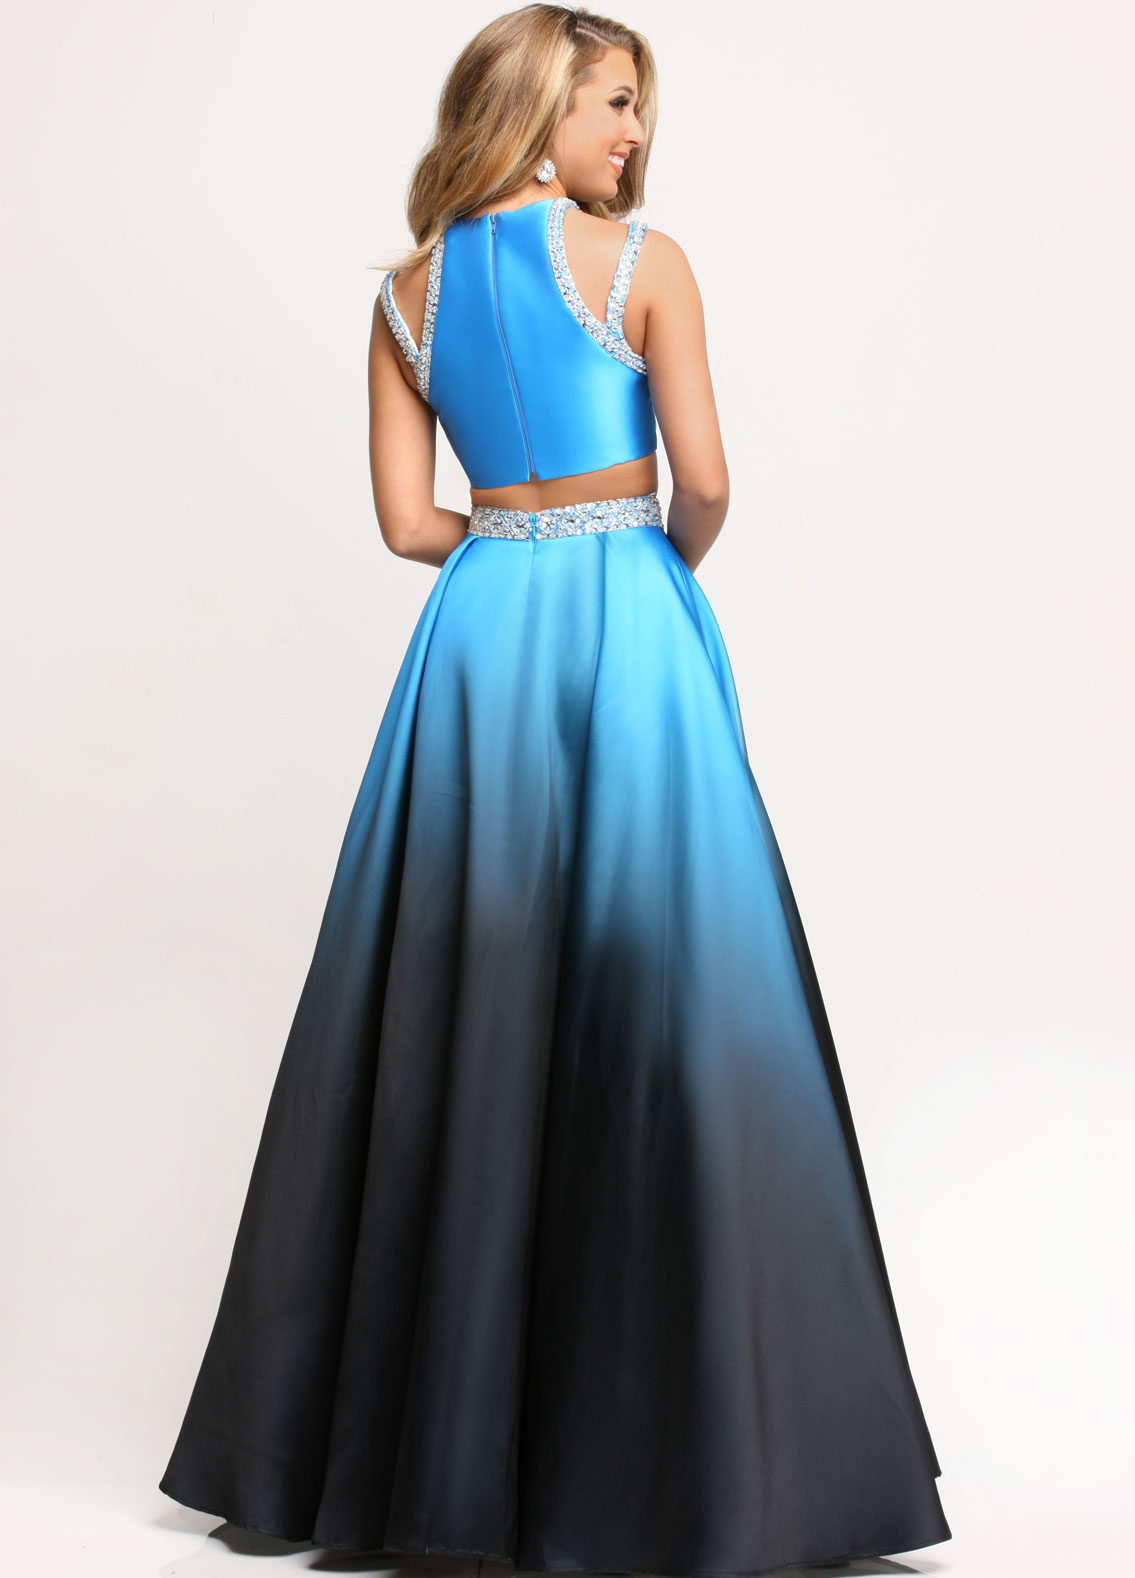 Image showing back view of style #71718